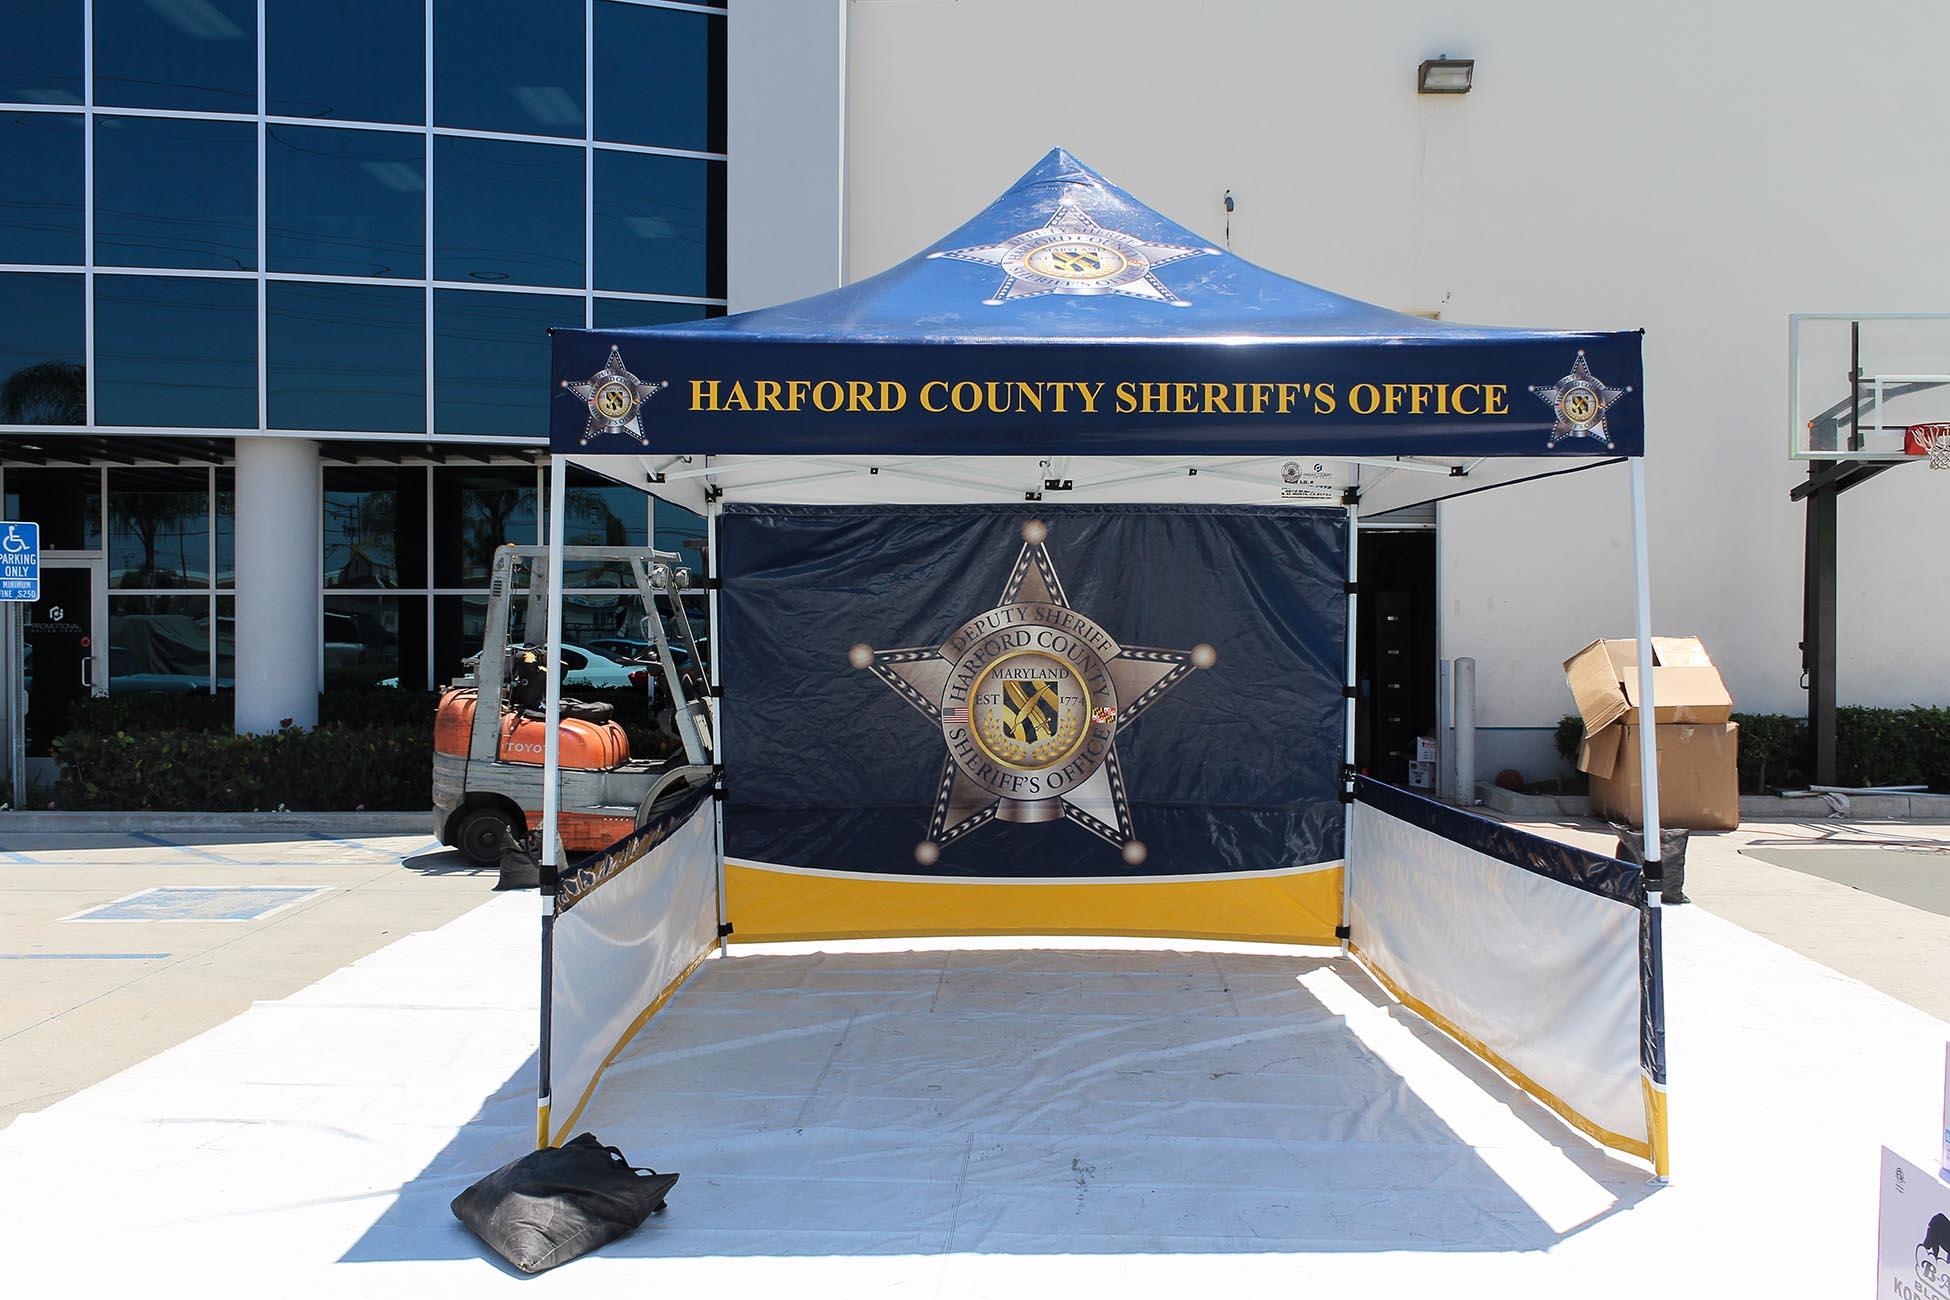 harford-county-sheriff's-office-10x10